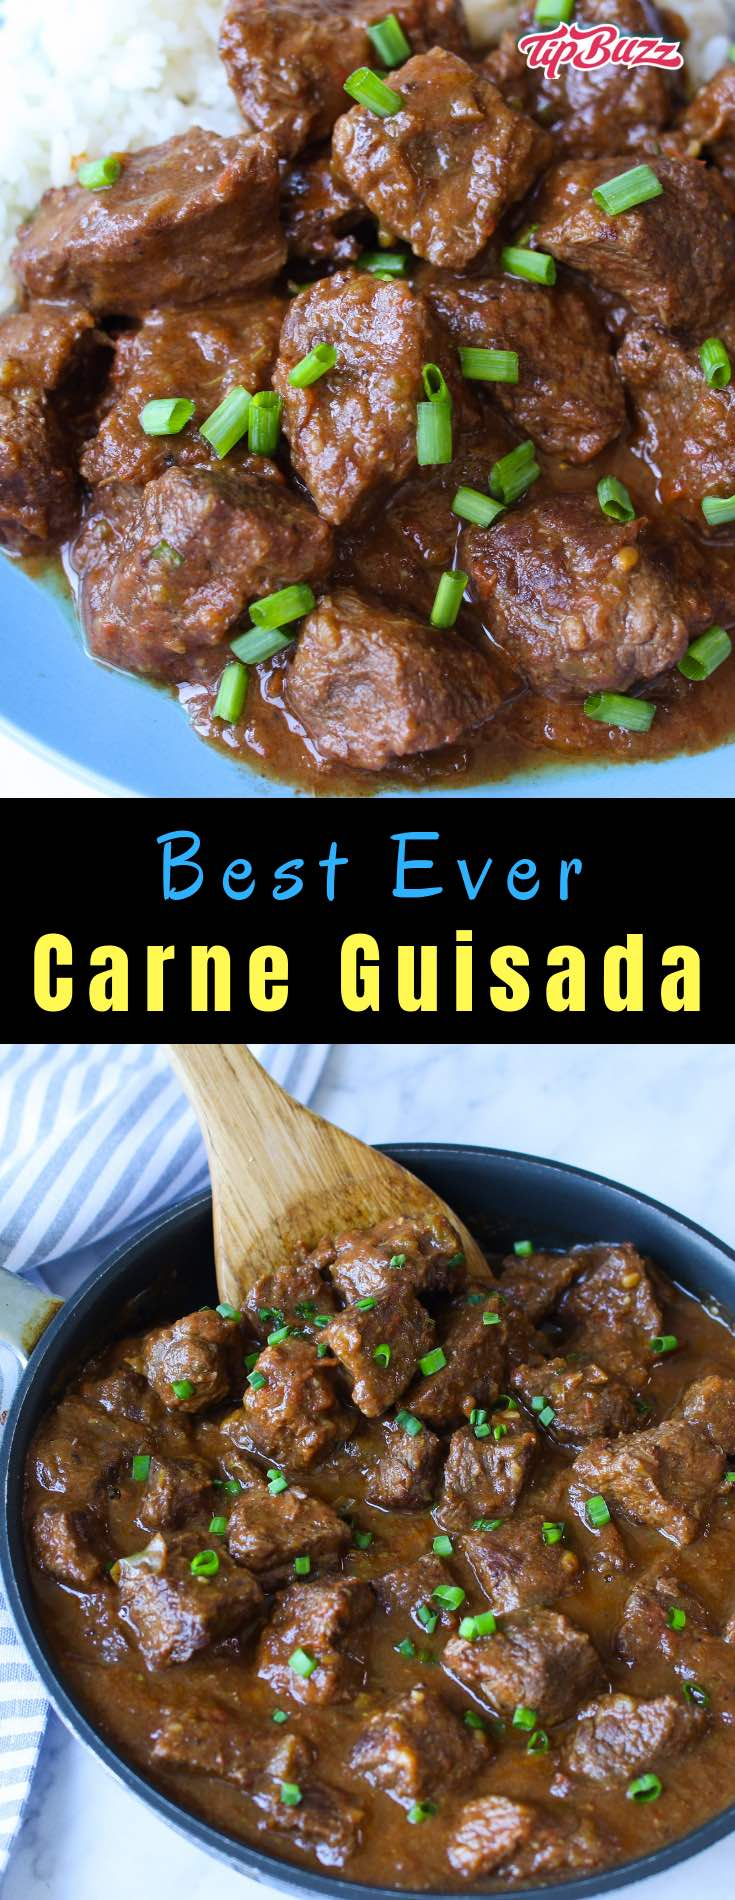 Carne Guisada is the ultimate Mexican beef stew made with chuck steak, onions, garlic, green bell pepper, tomatoes and seasoned with cumin, salt and pepper. It's a delicious Tex Mex main you can make on the stovetop or crock pot for dinner, a potluck or a party.